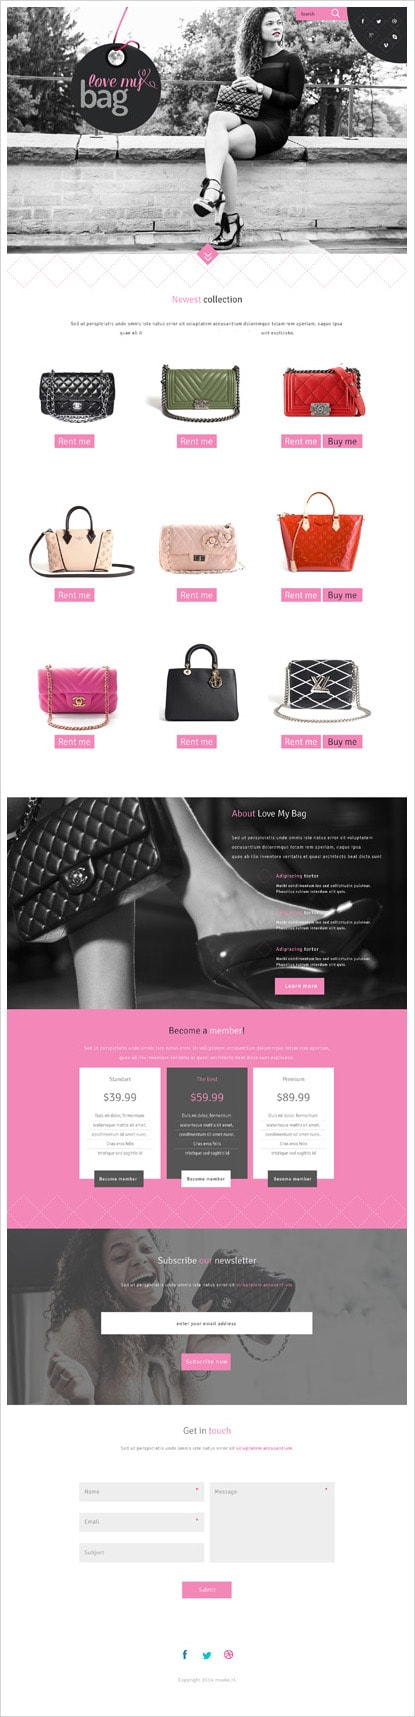 Love%20My%20Bag%20website.jpg